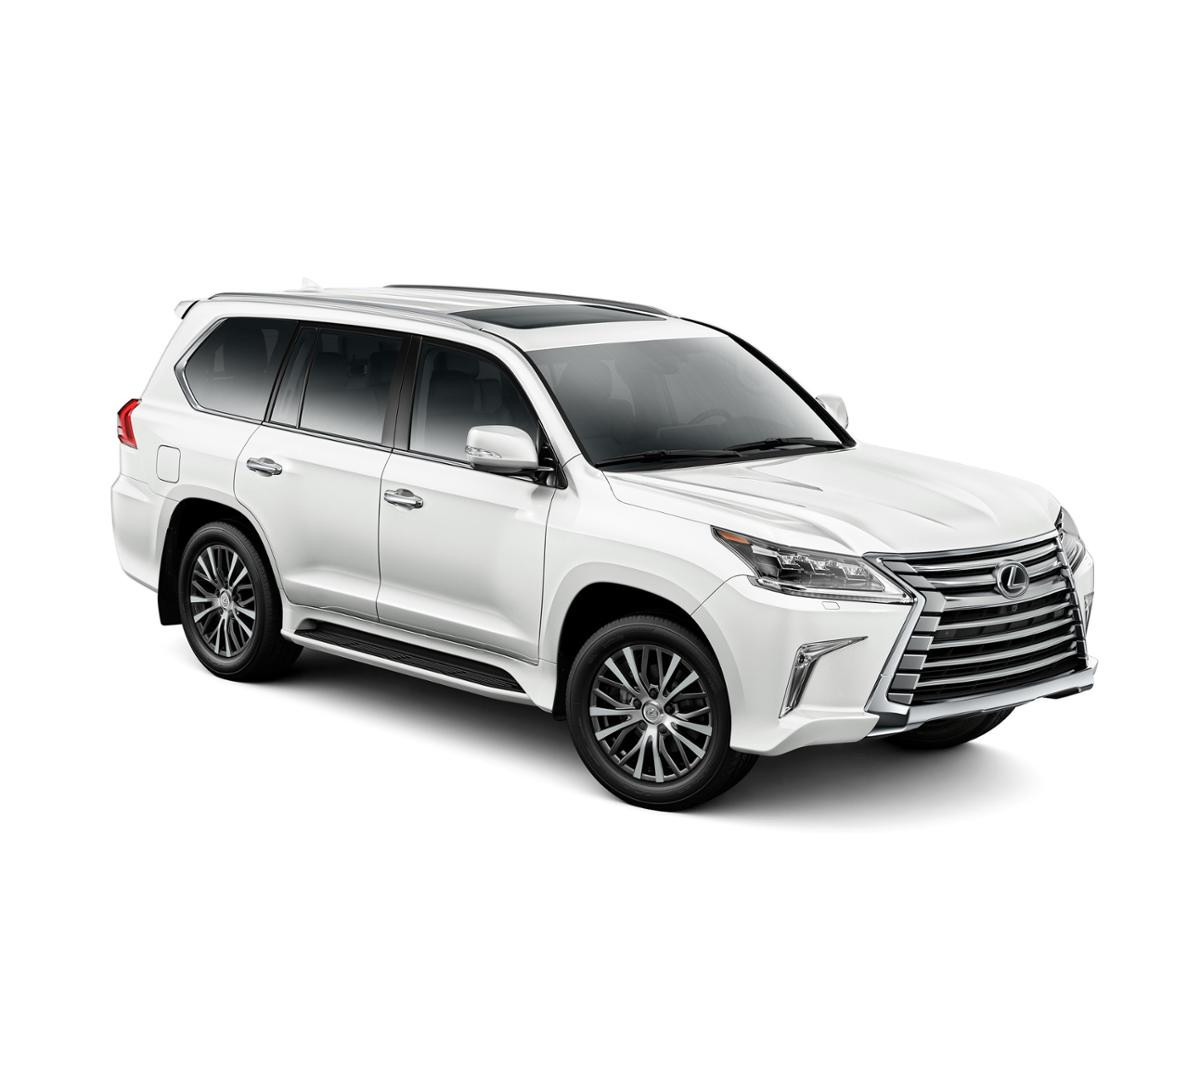 2018 Lexus LX 570 Vehicle Photo in El Monte, CA 91731